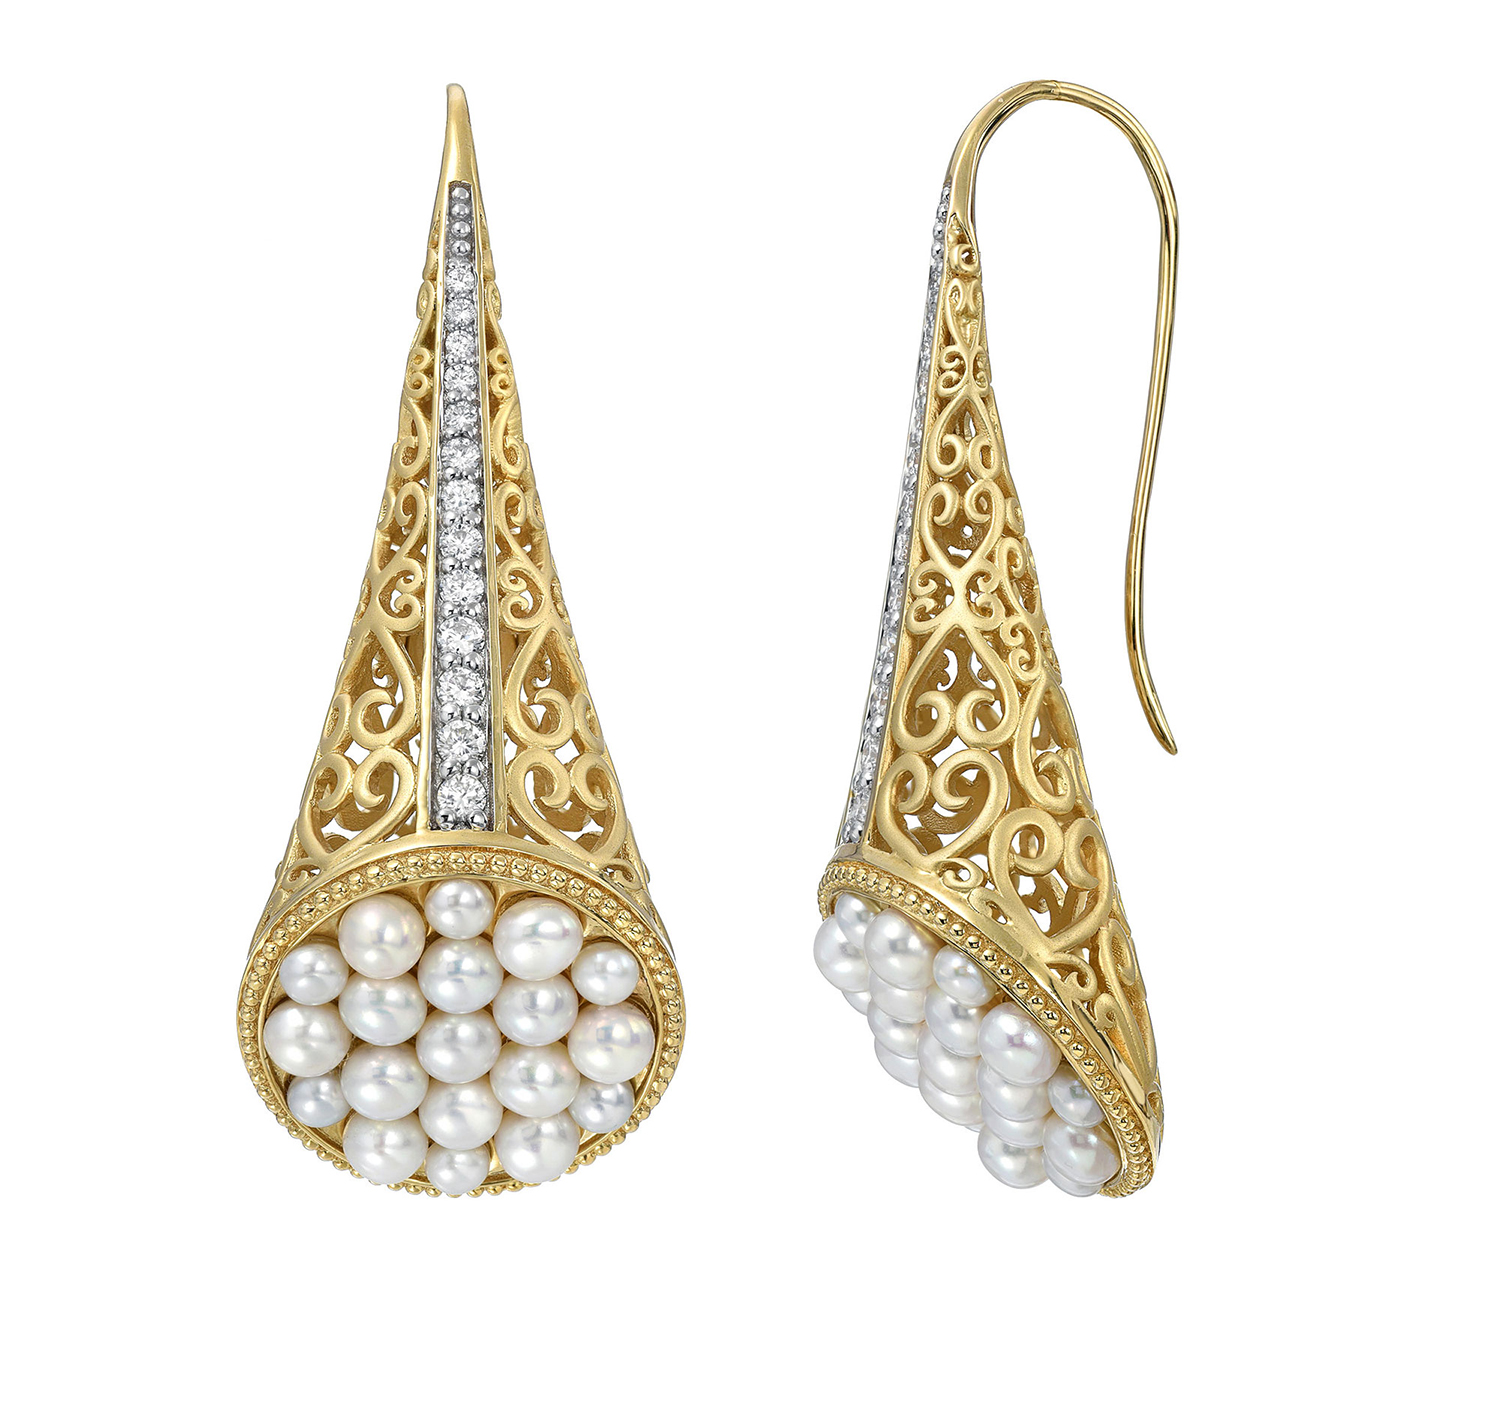 INSTORE Design Awards 2021 – Pearl Jewelry Over $5,000